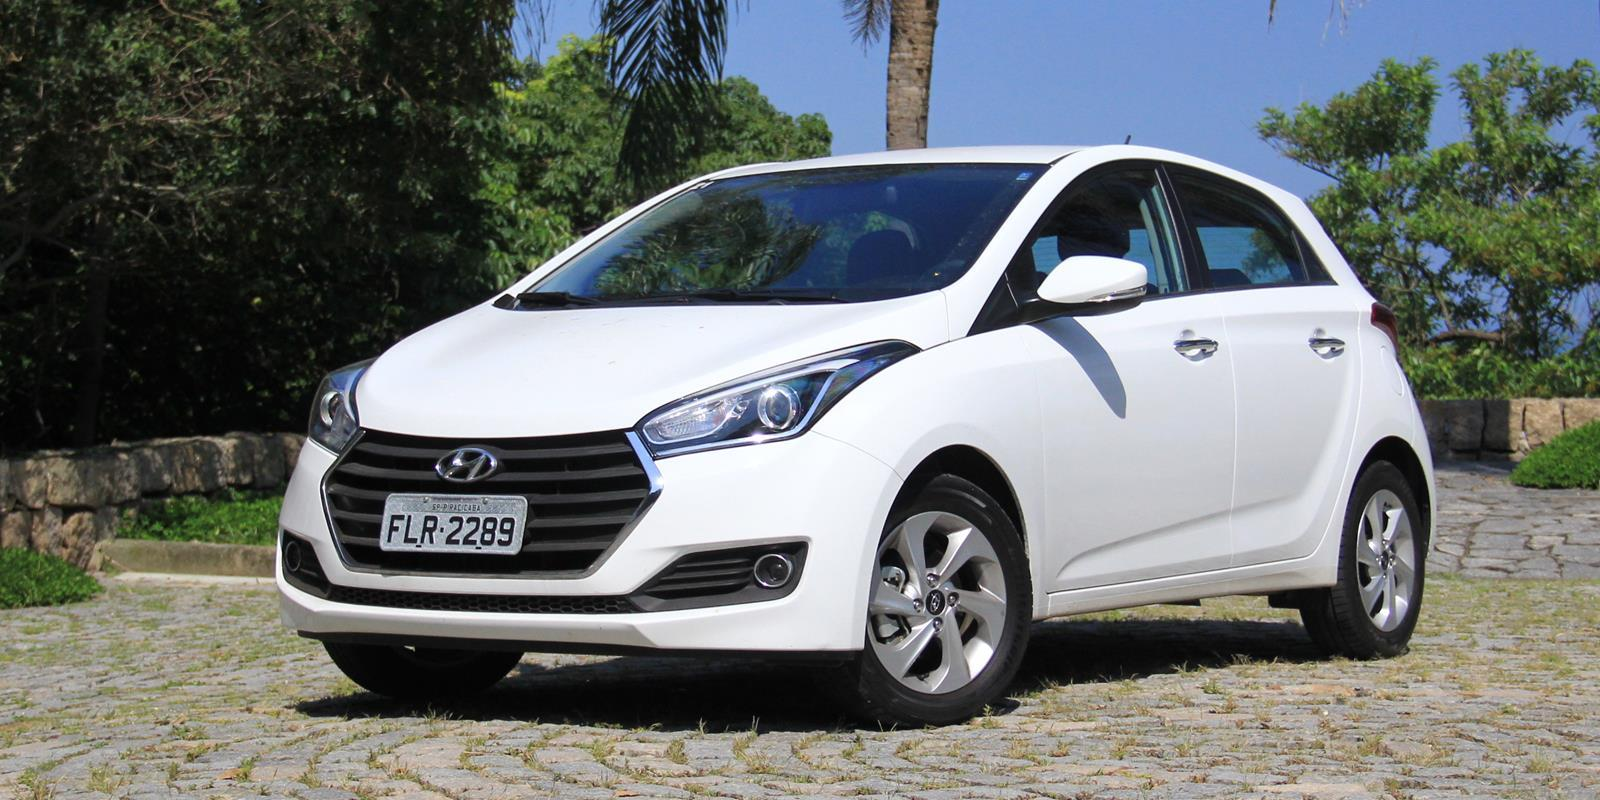 Hyundai HB20 Premium 1.6 AT 2016 3